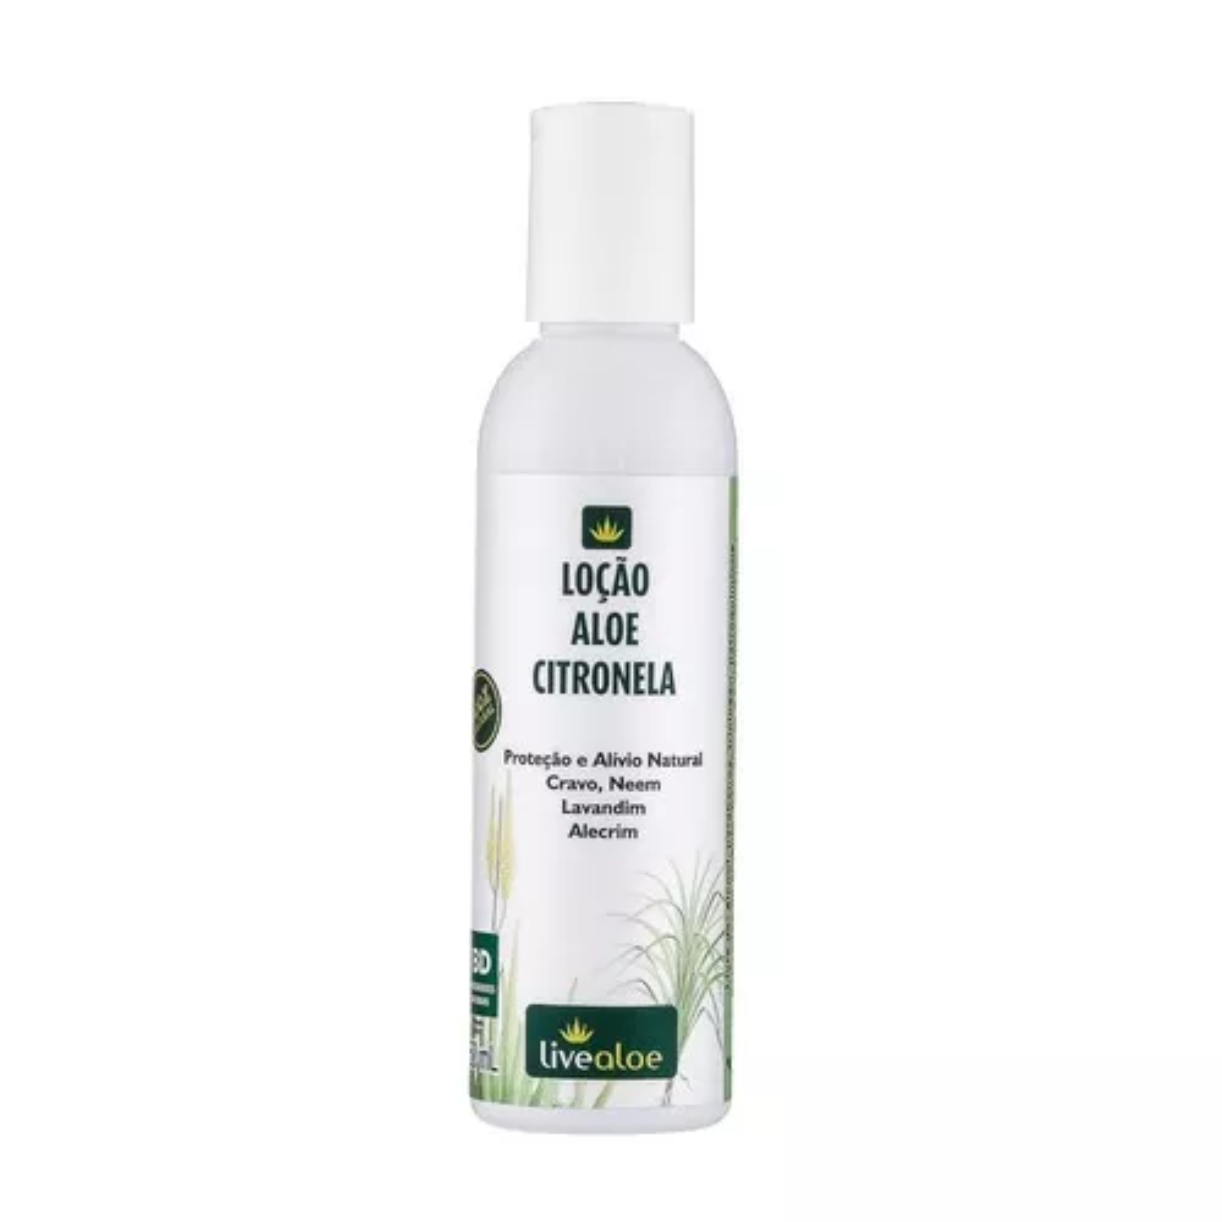 Loção Natural Aloe Citronela 150ml Livealoe